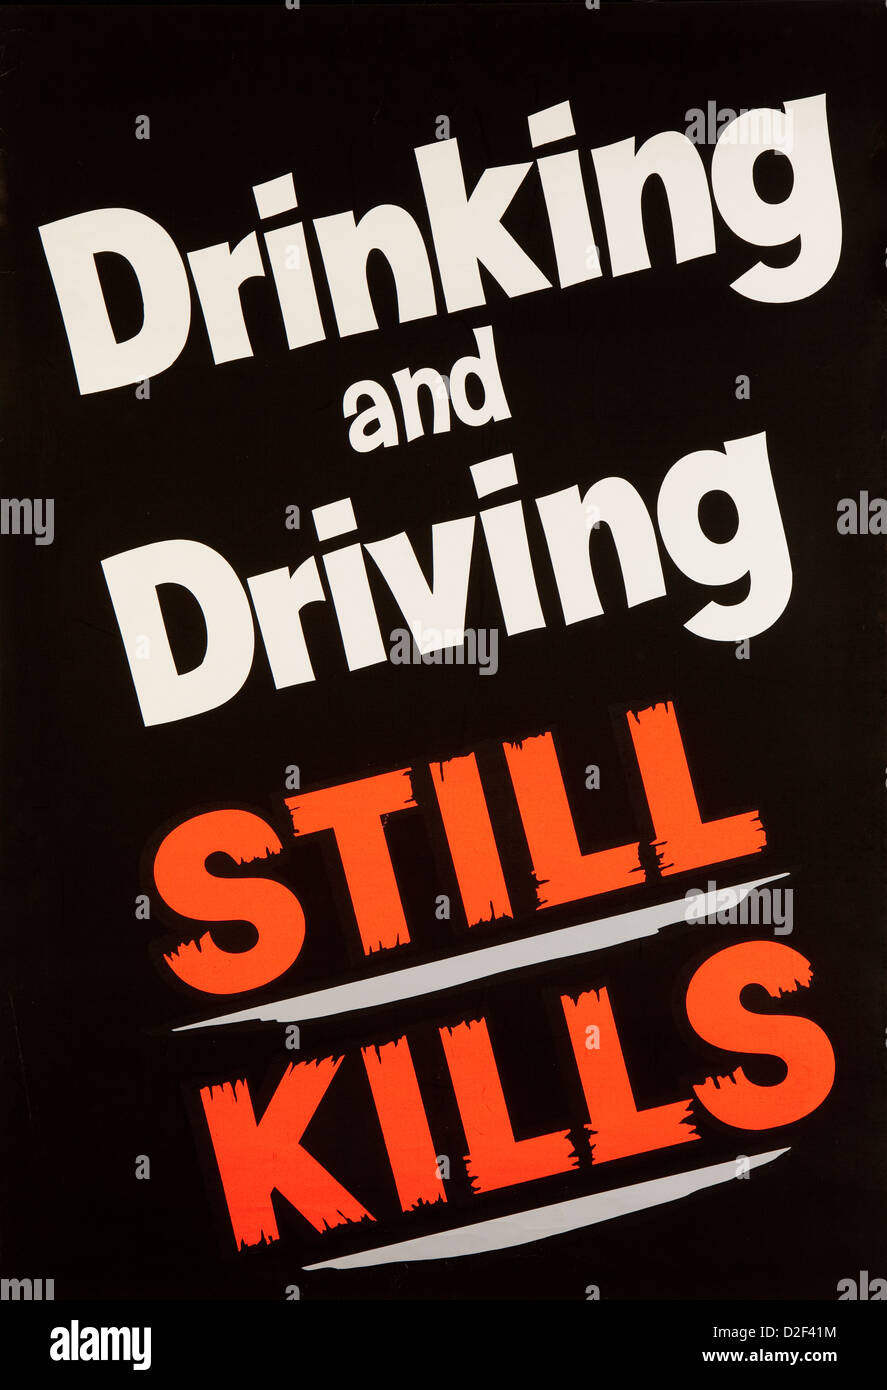 Road Safety, 1960s, ROSPA anti drink driving, drinking and driving still kills poster - Stock Image